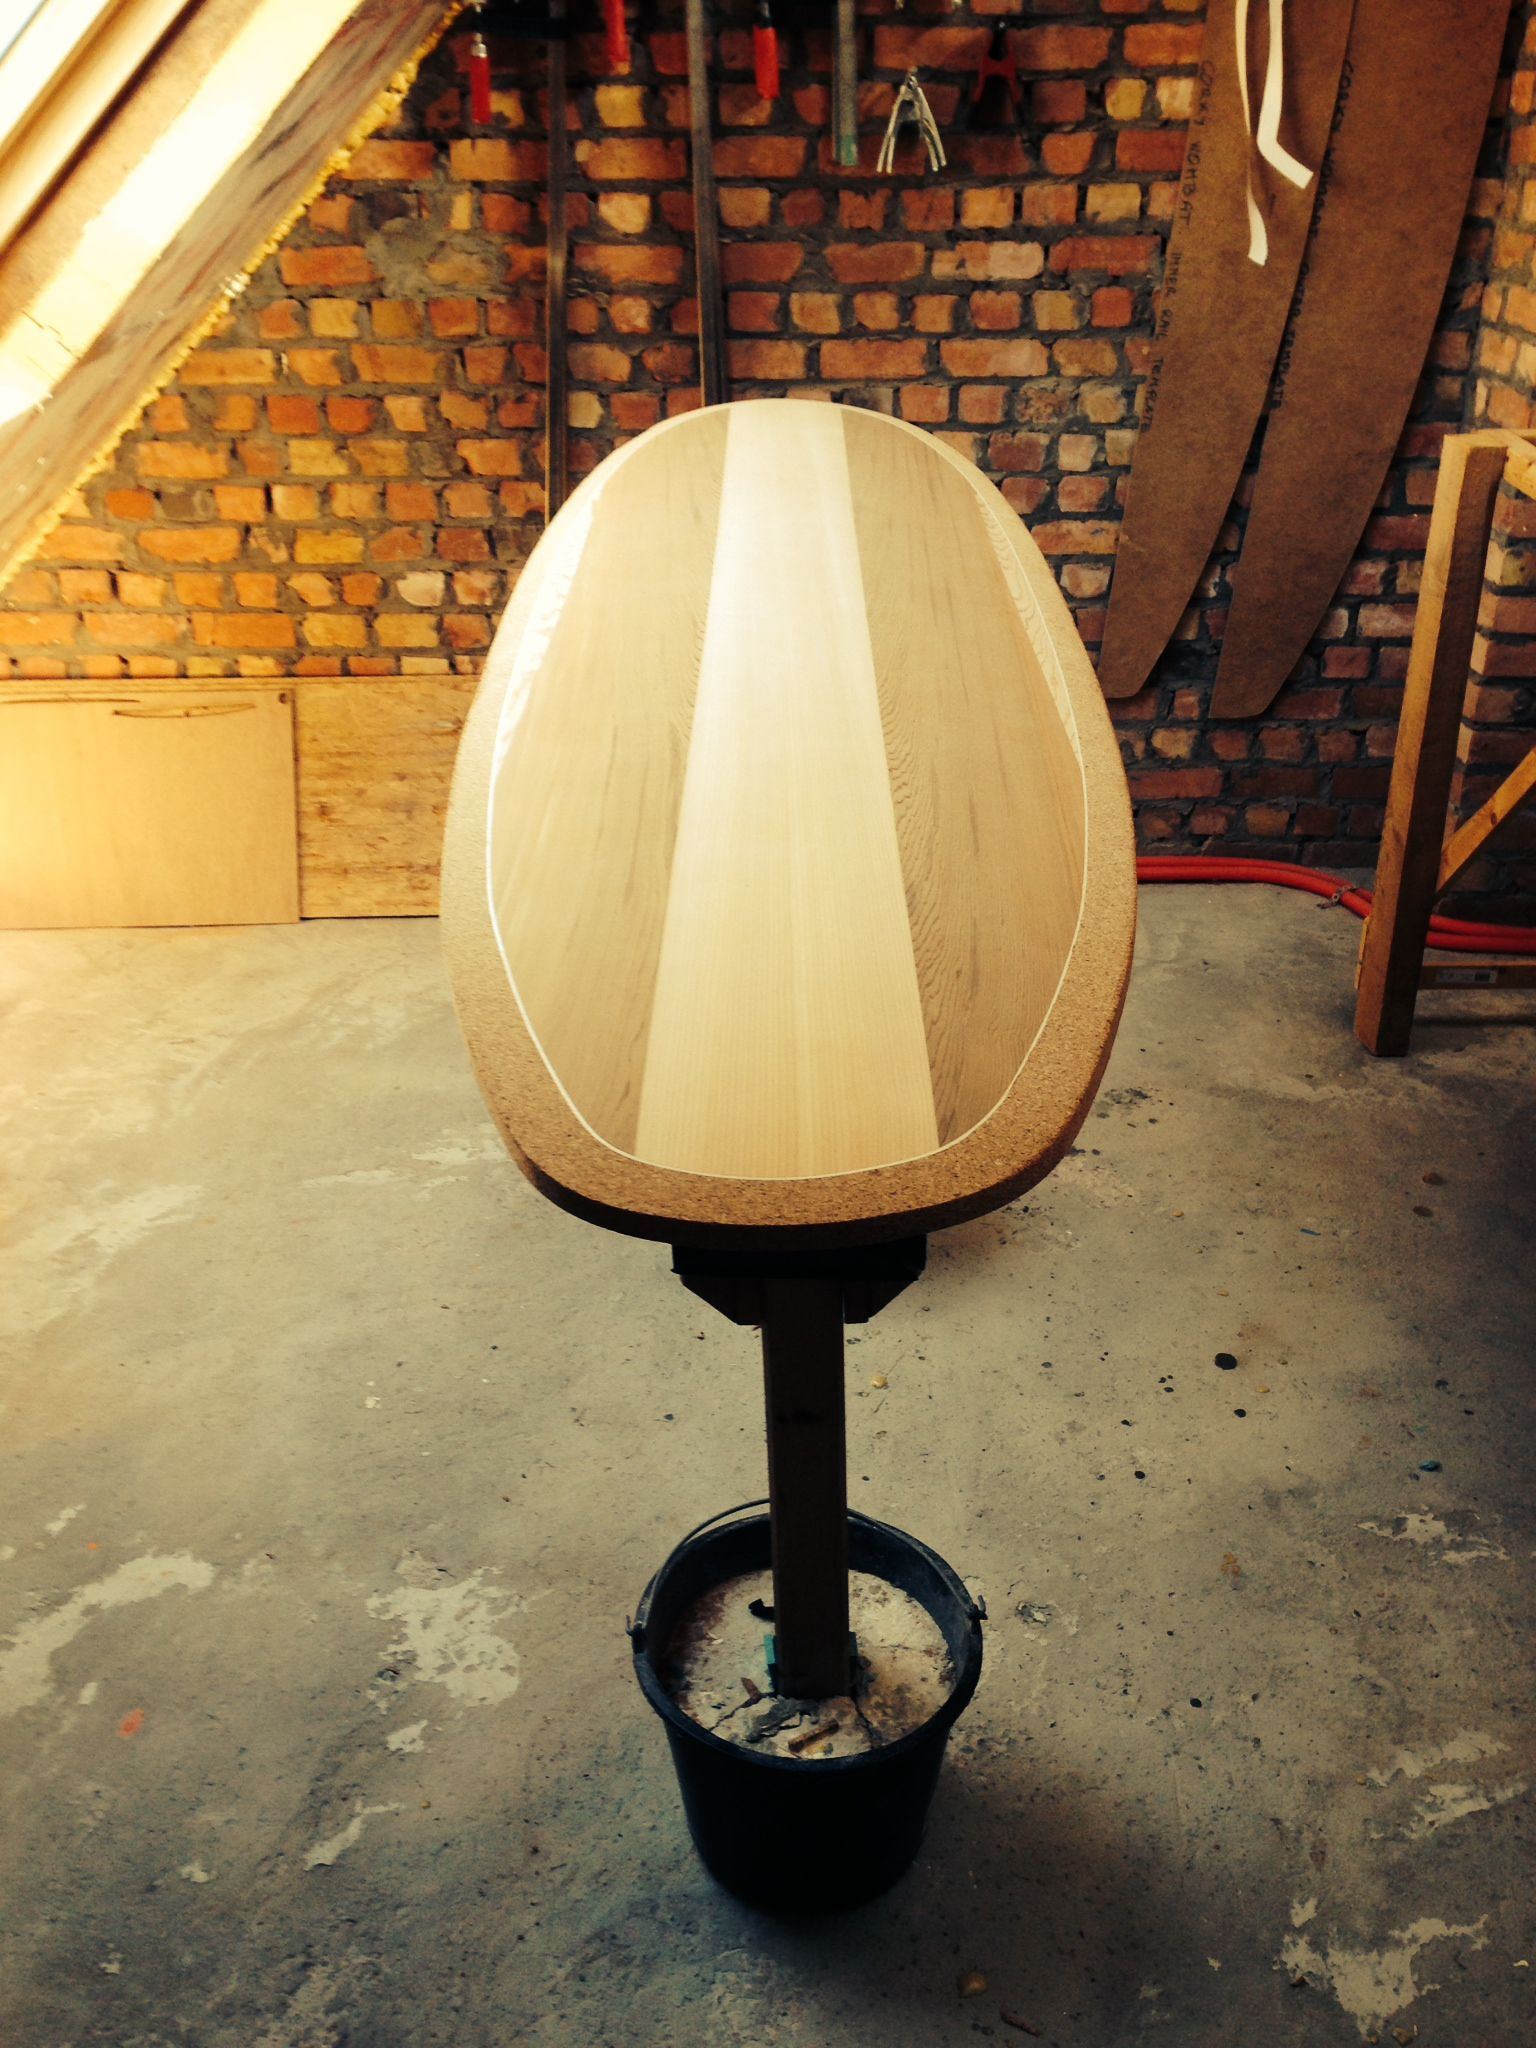 Making Of A 64 Rotor Surfboard With Cork Rails